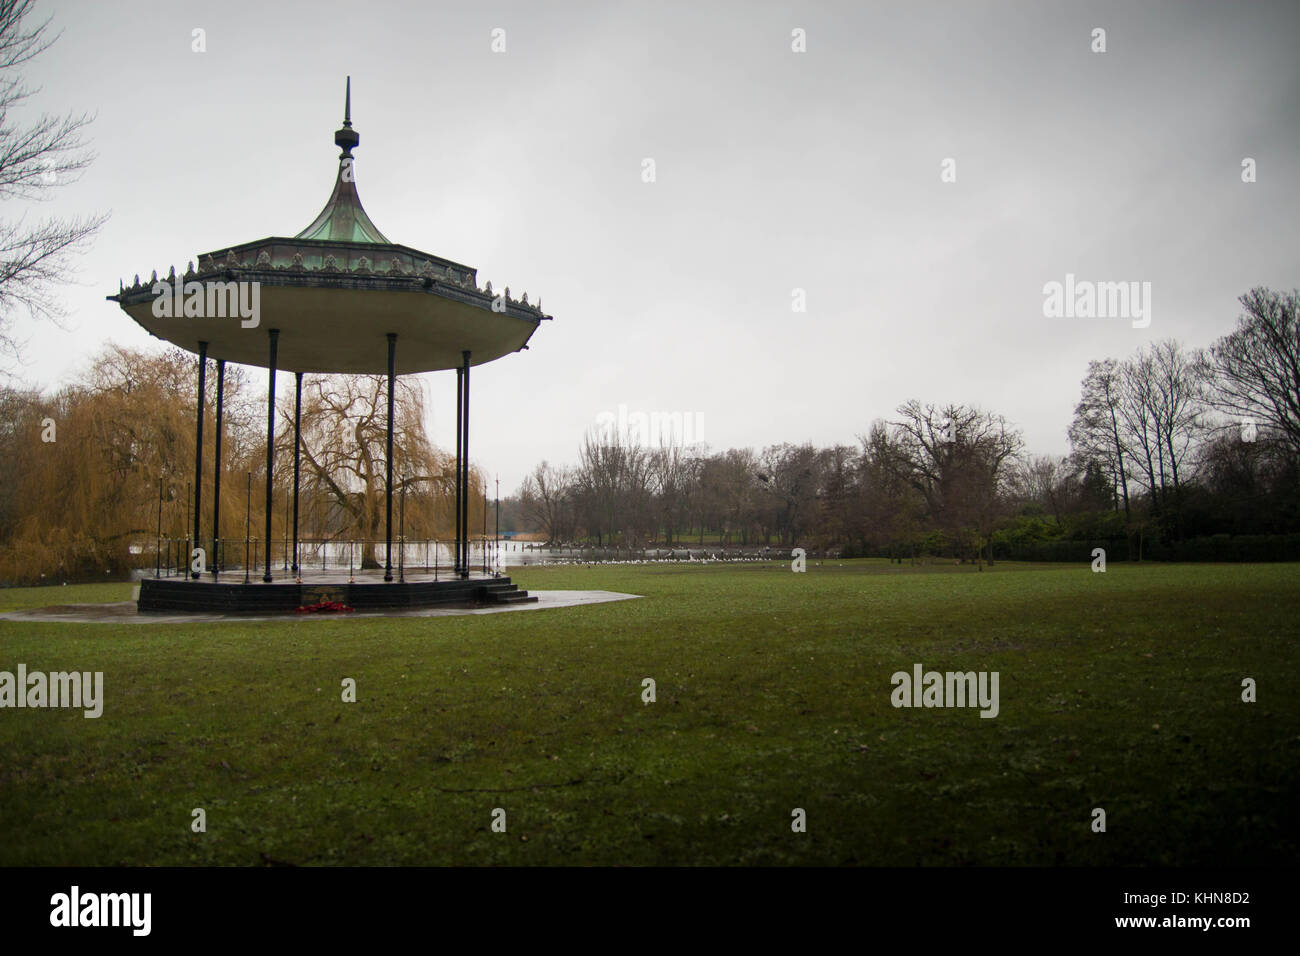 Bandstand, pavilion by the lake in Regent's Park, London. No people, copy space. - Stock Image